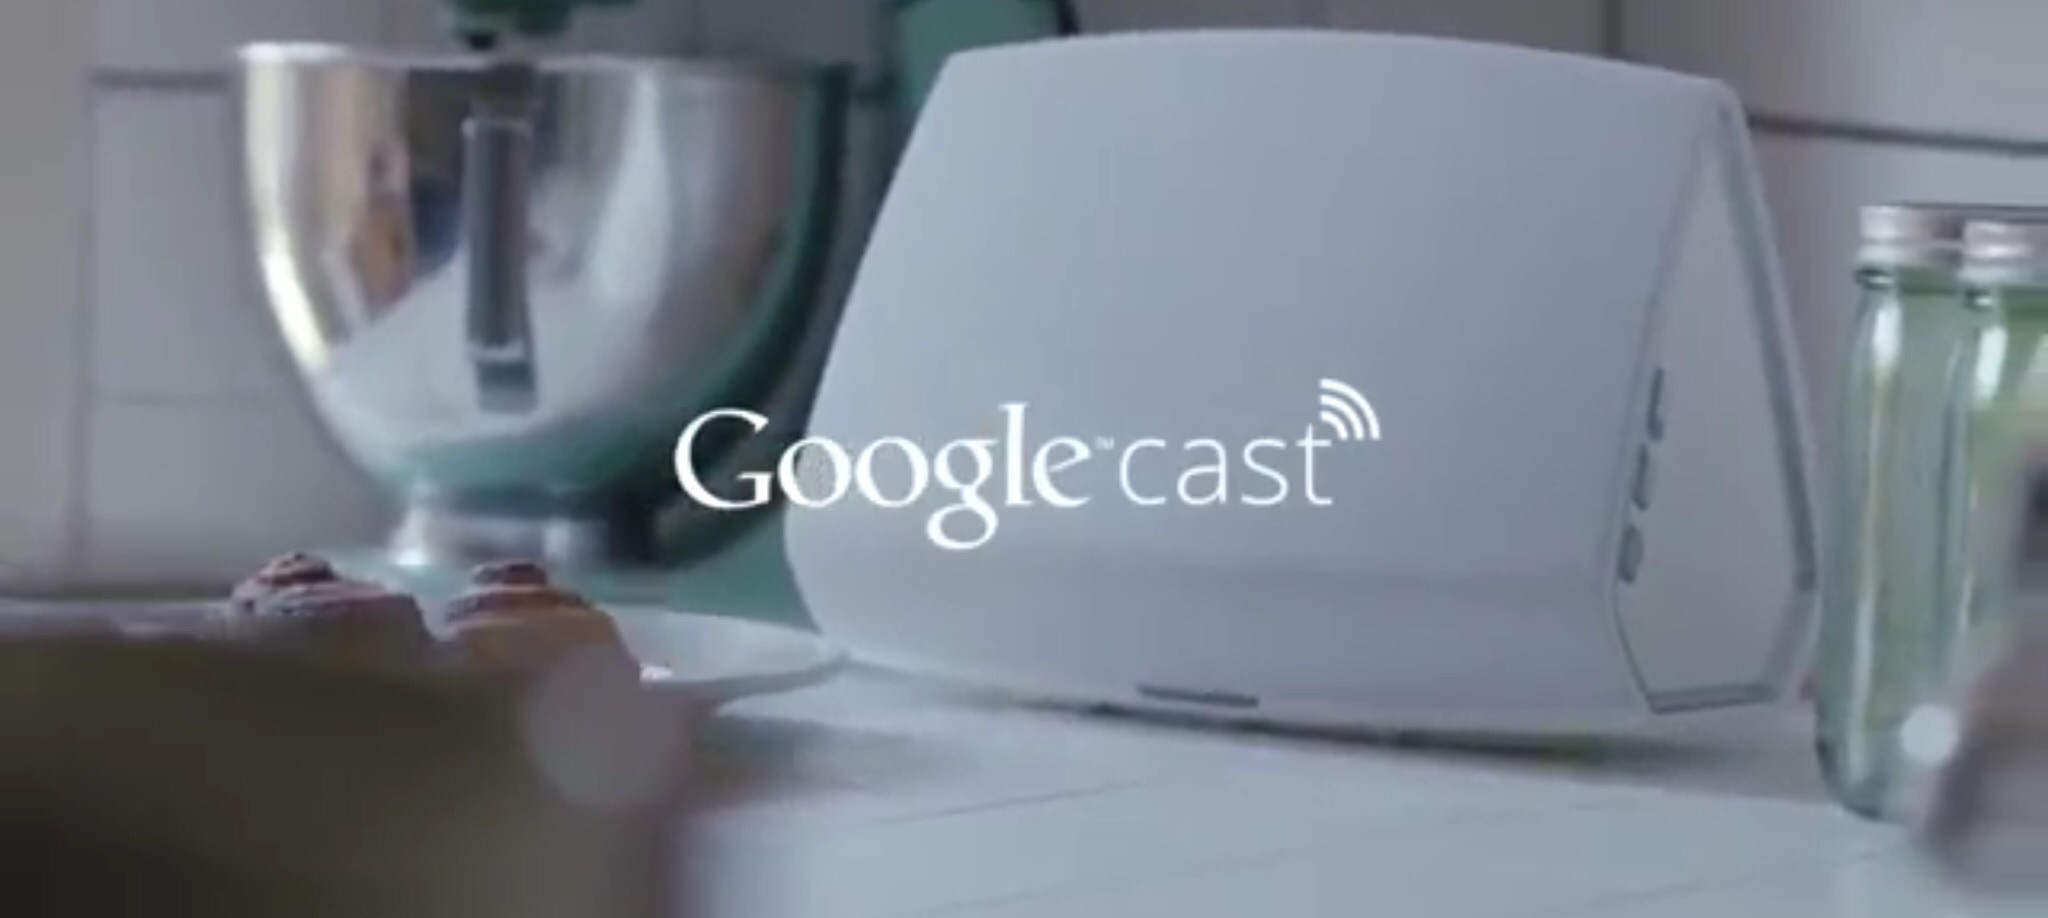 Google cast audio avrmagazine